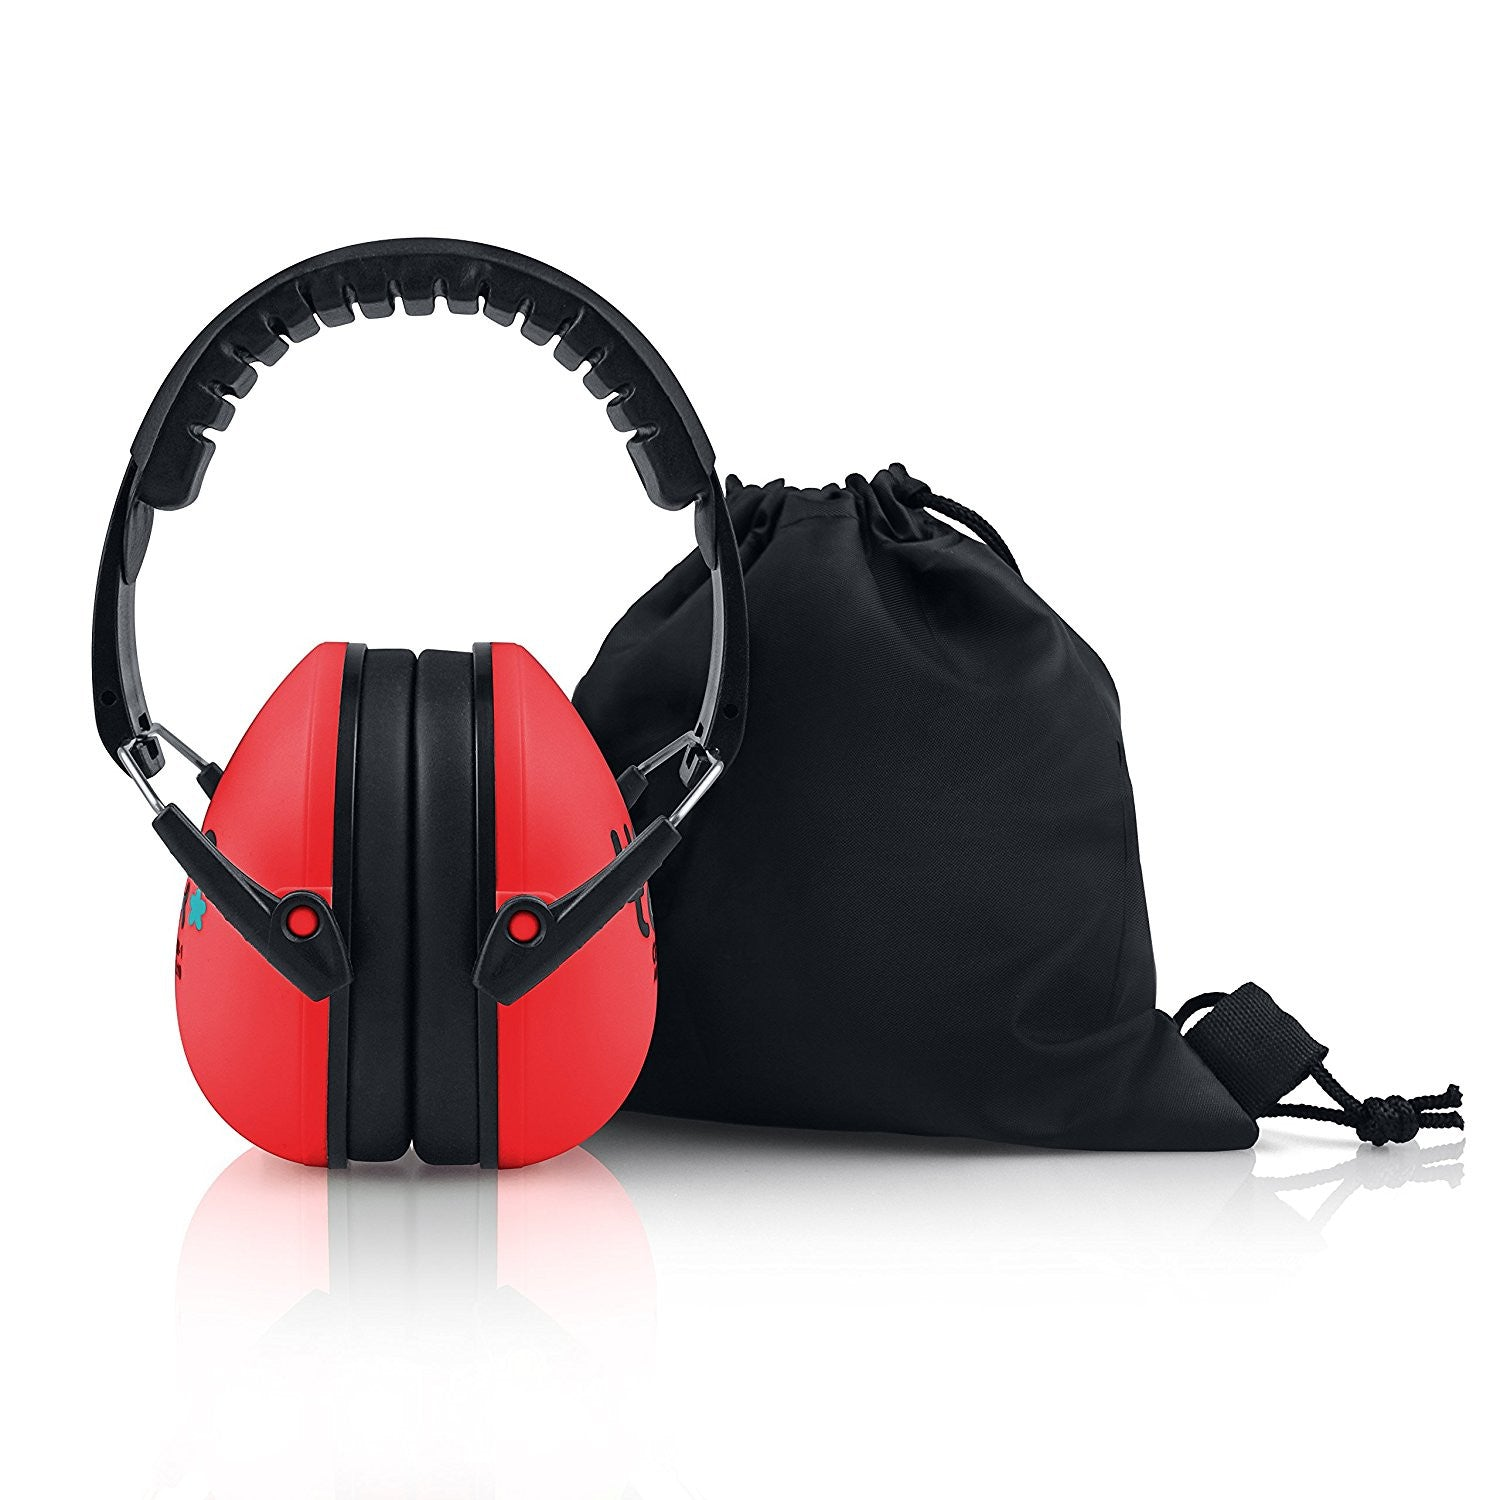 Glowing Red Senna Earmuffs Hearing Protection with Travel Bag